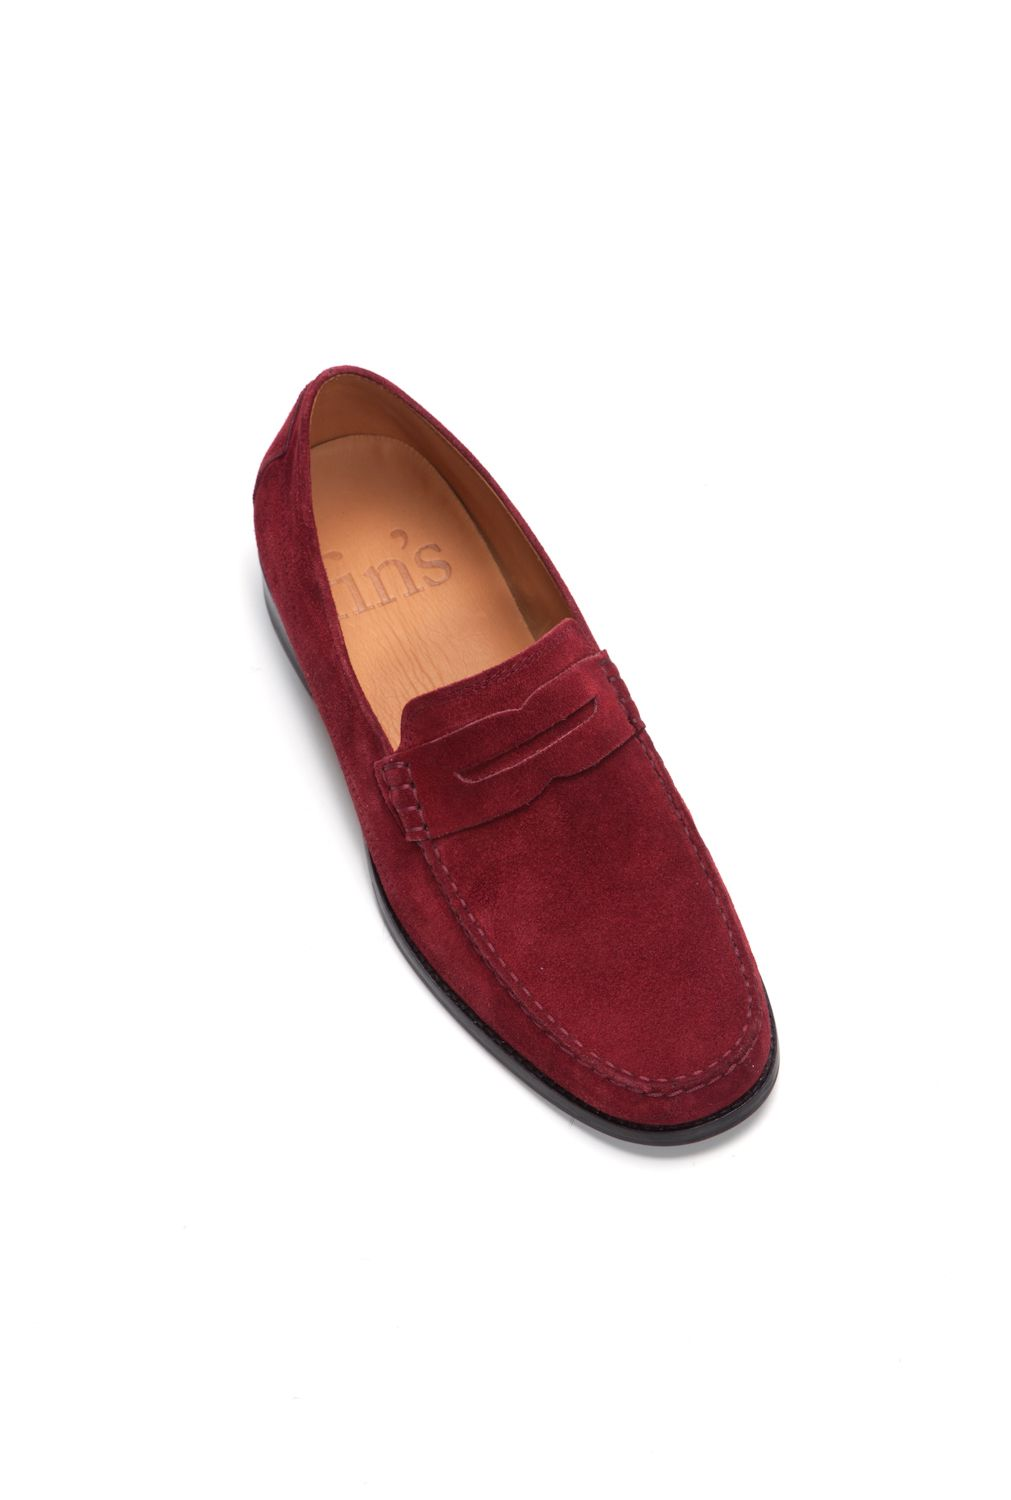 Peregrine red suede loafers